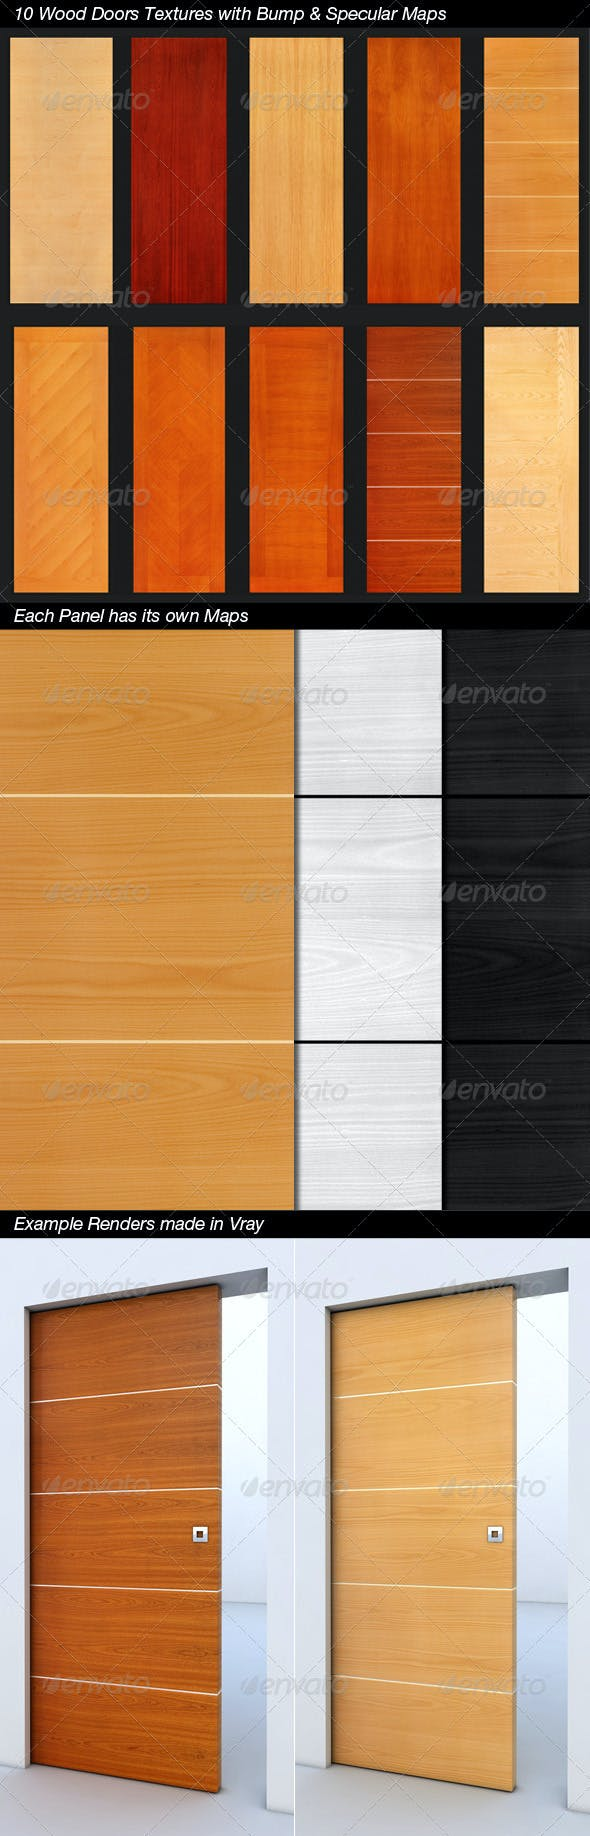 10 Wood Doors/Panels with Bump & Specular Maps - 3DOcean Item for Sale